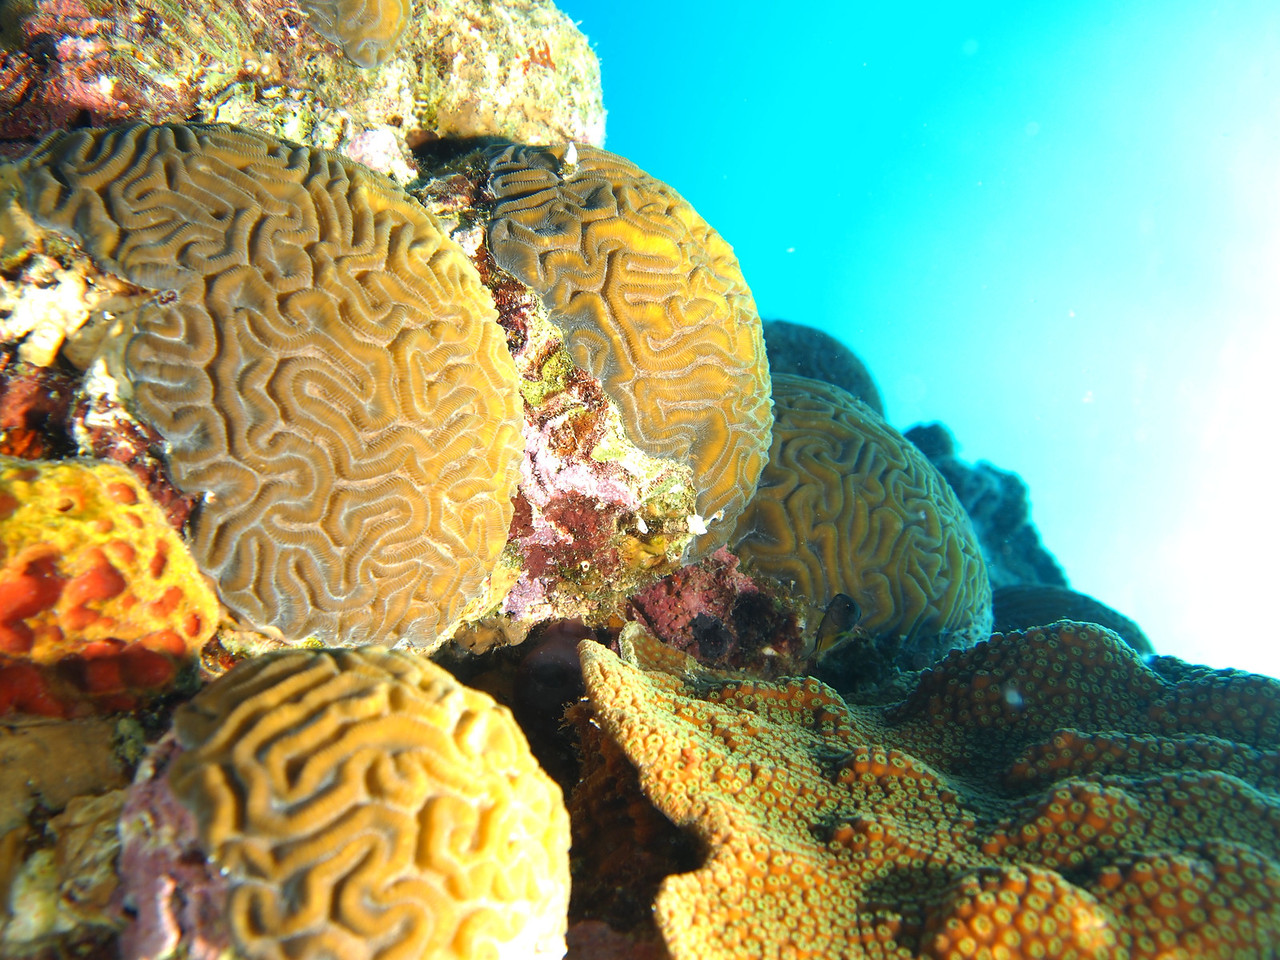 Beautiful corals proudly worn by a small sunken boat just north of the Buddy Dive reef. About 30-35 feet of water.